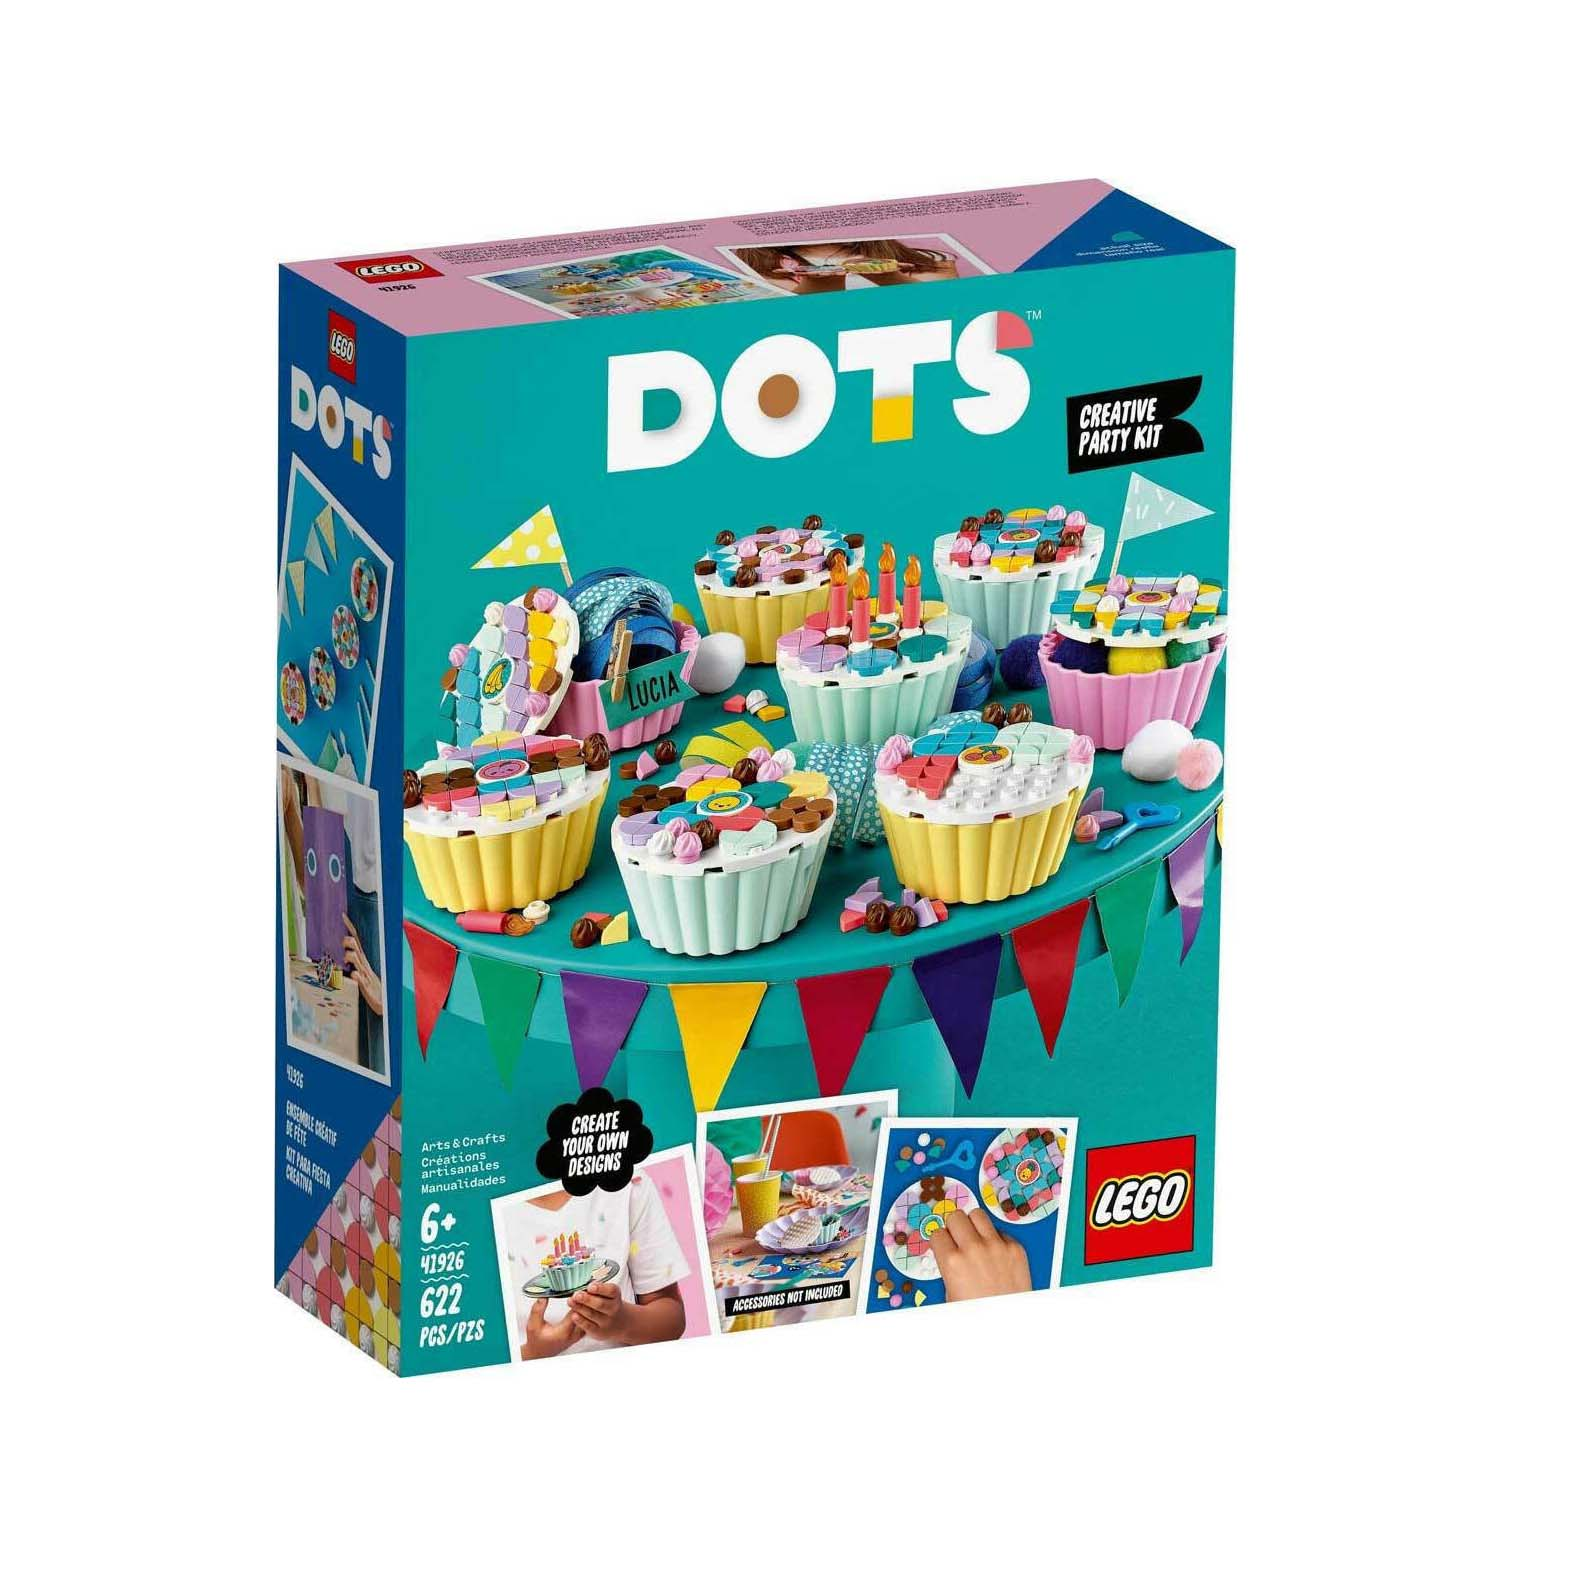 Lego Dots: Creative Party Kit with Cupcakes 41926